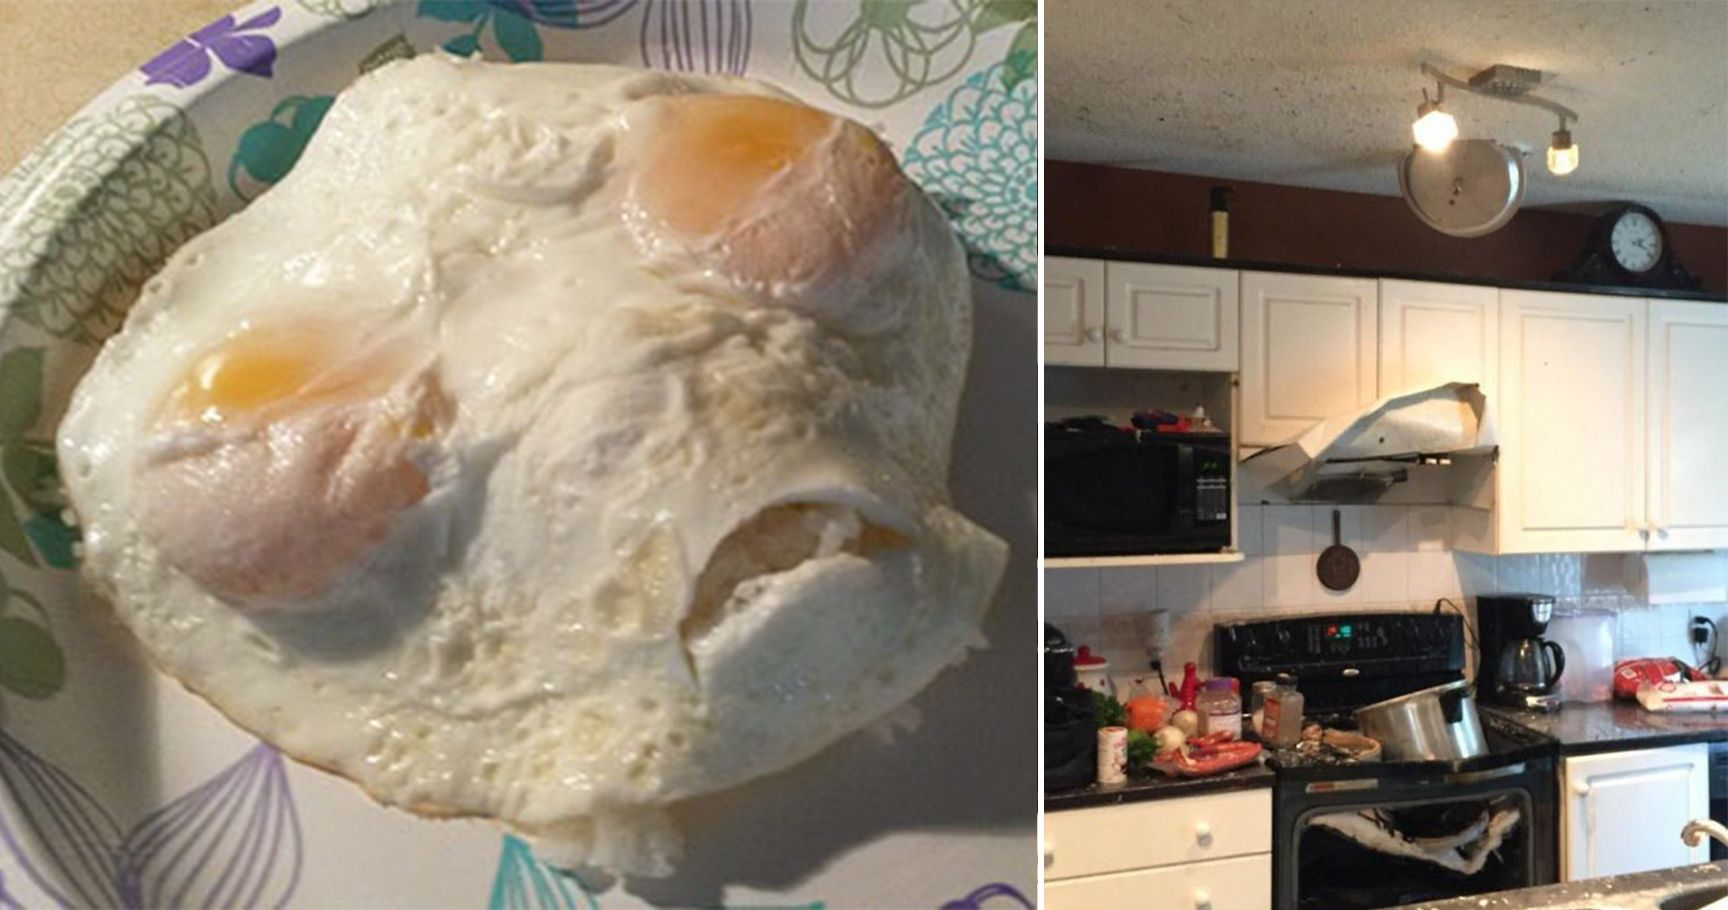 15 Of The Worst Cooking Fails That Make Us Order Takeout Fast